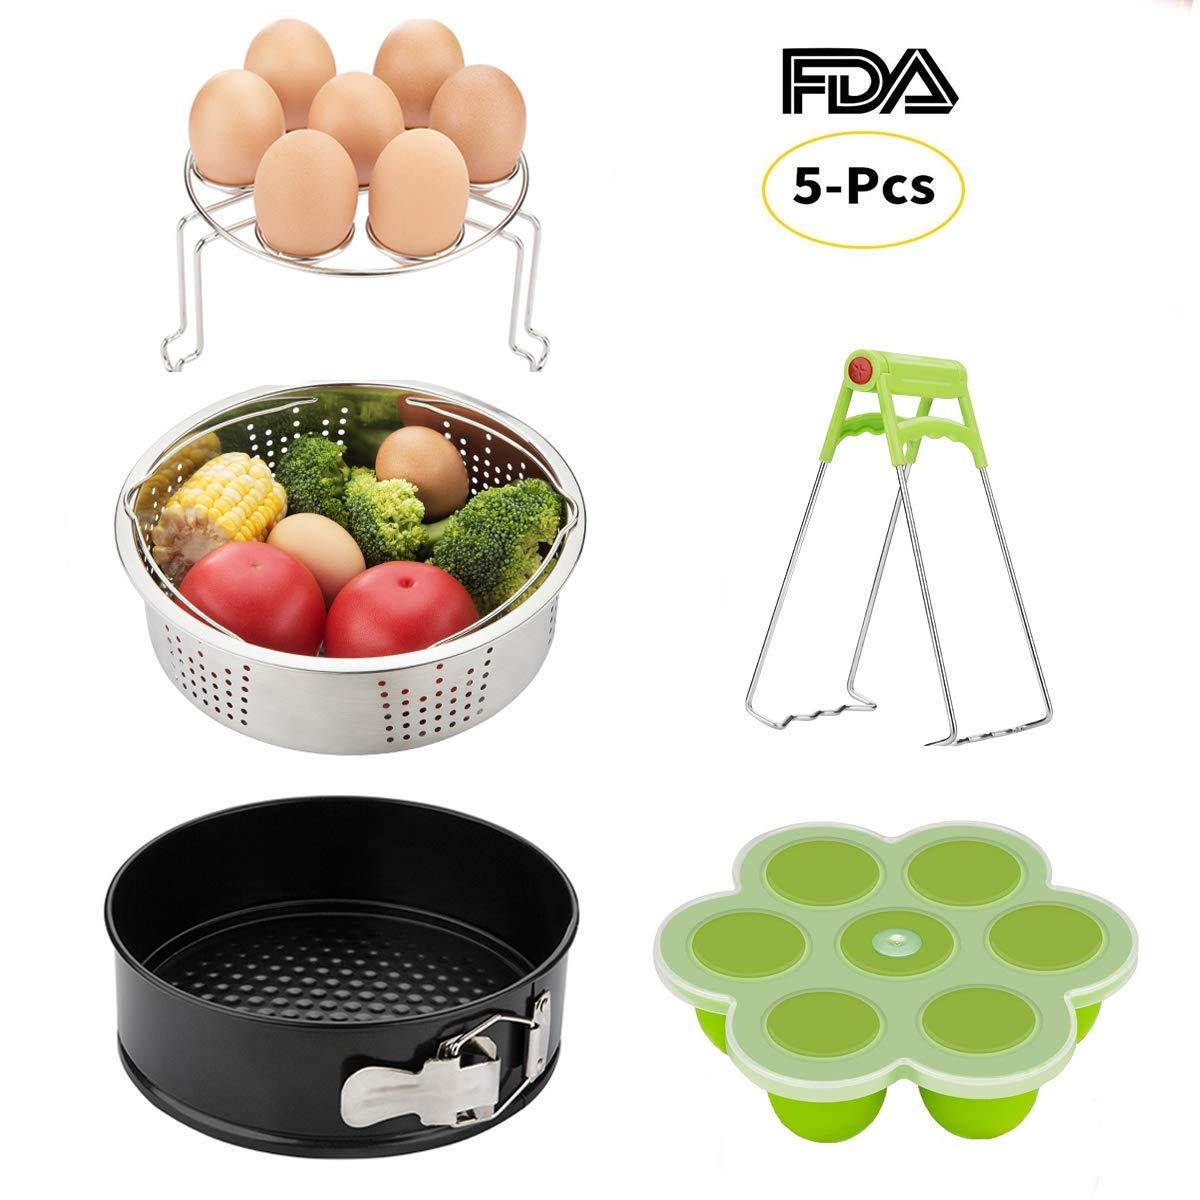 Instant Pot Accessories Set-Fits 5,6,8Qt Instapot Pressure Cooker,5-Pcs with Steamer Basket/Egg Steamer Rack/Egg Bites Molds/Non-stick Springform Pan/DishClip